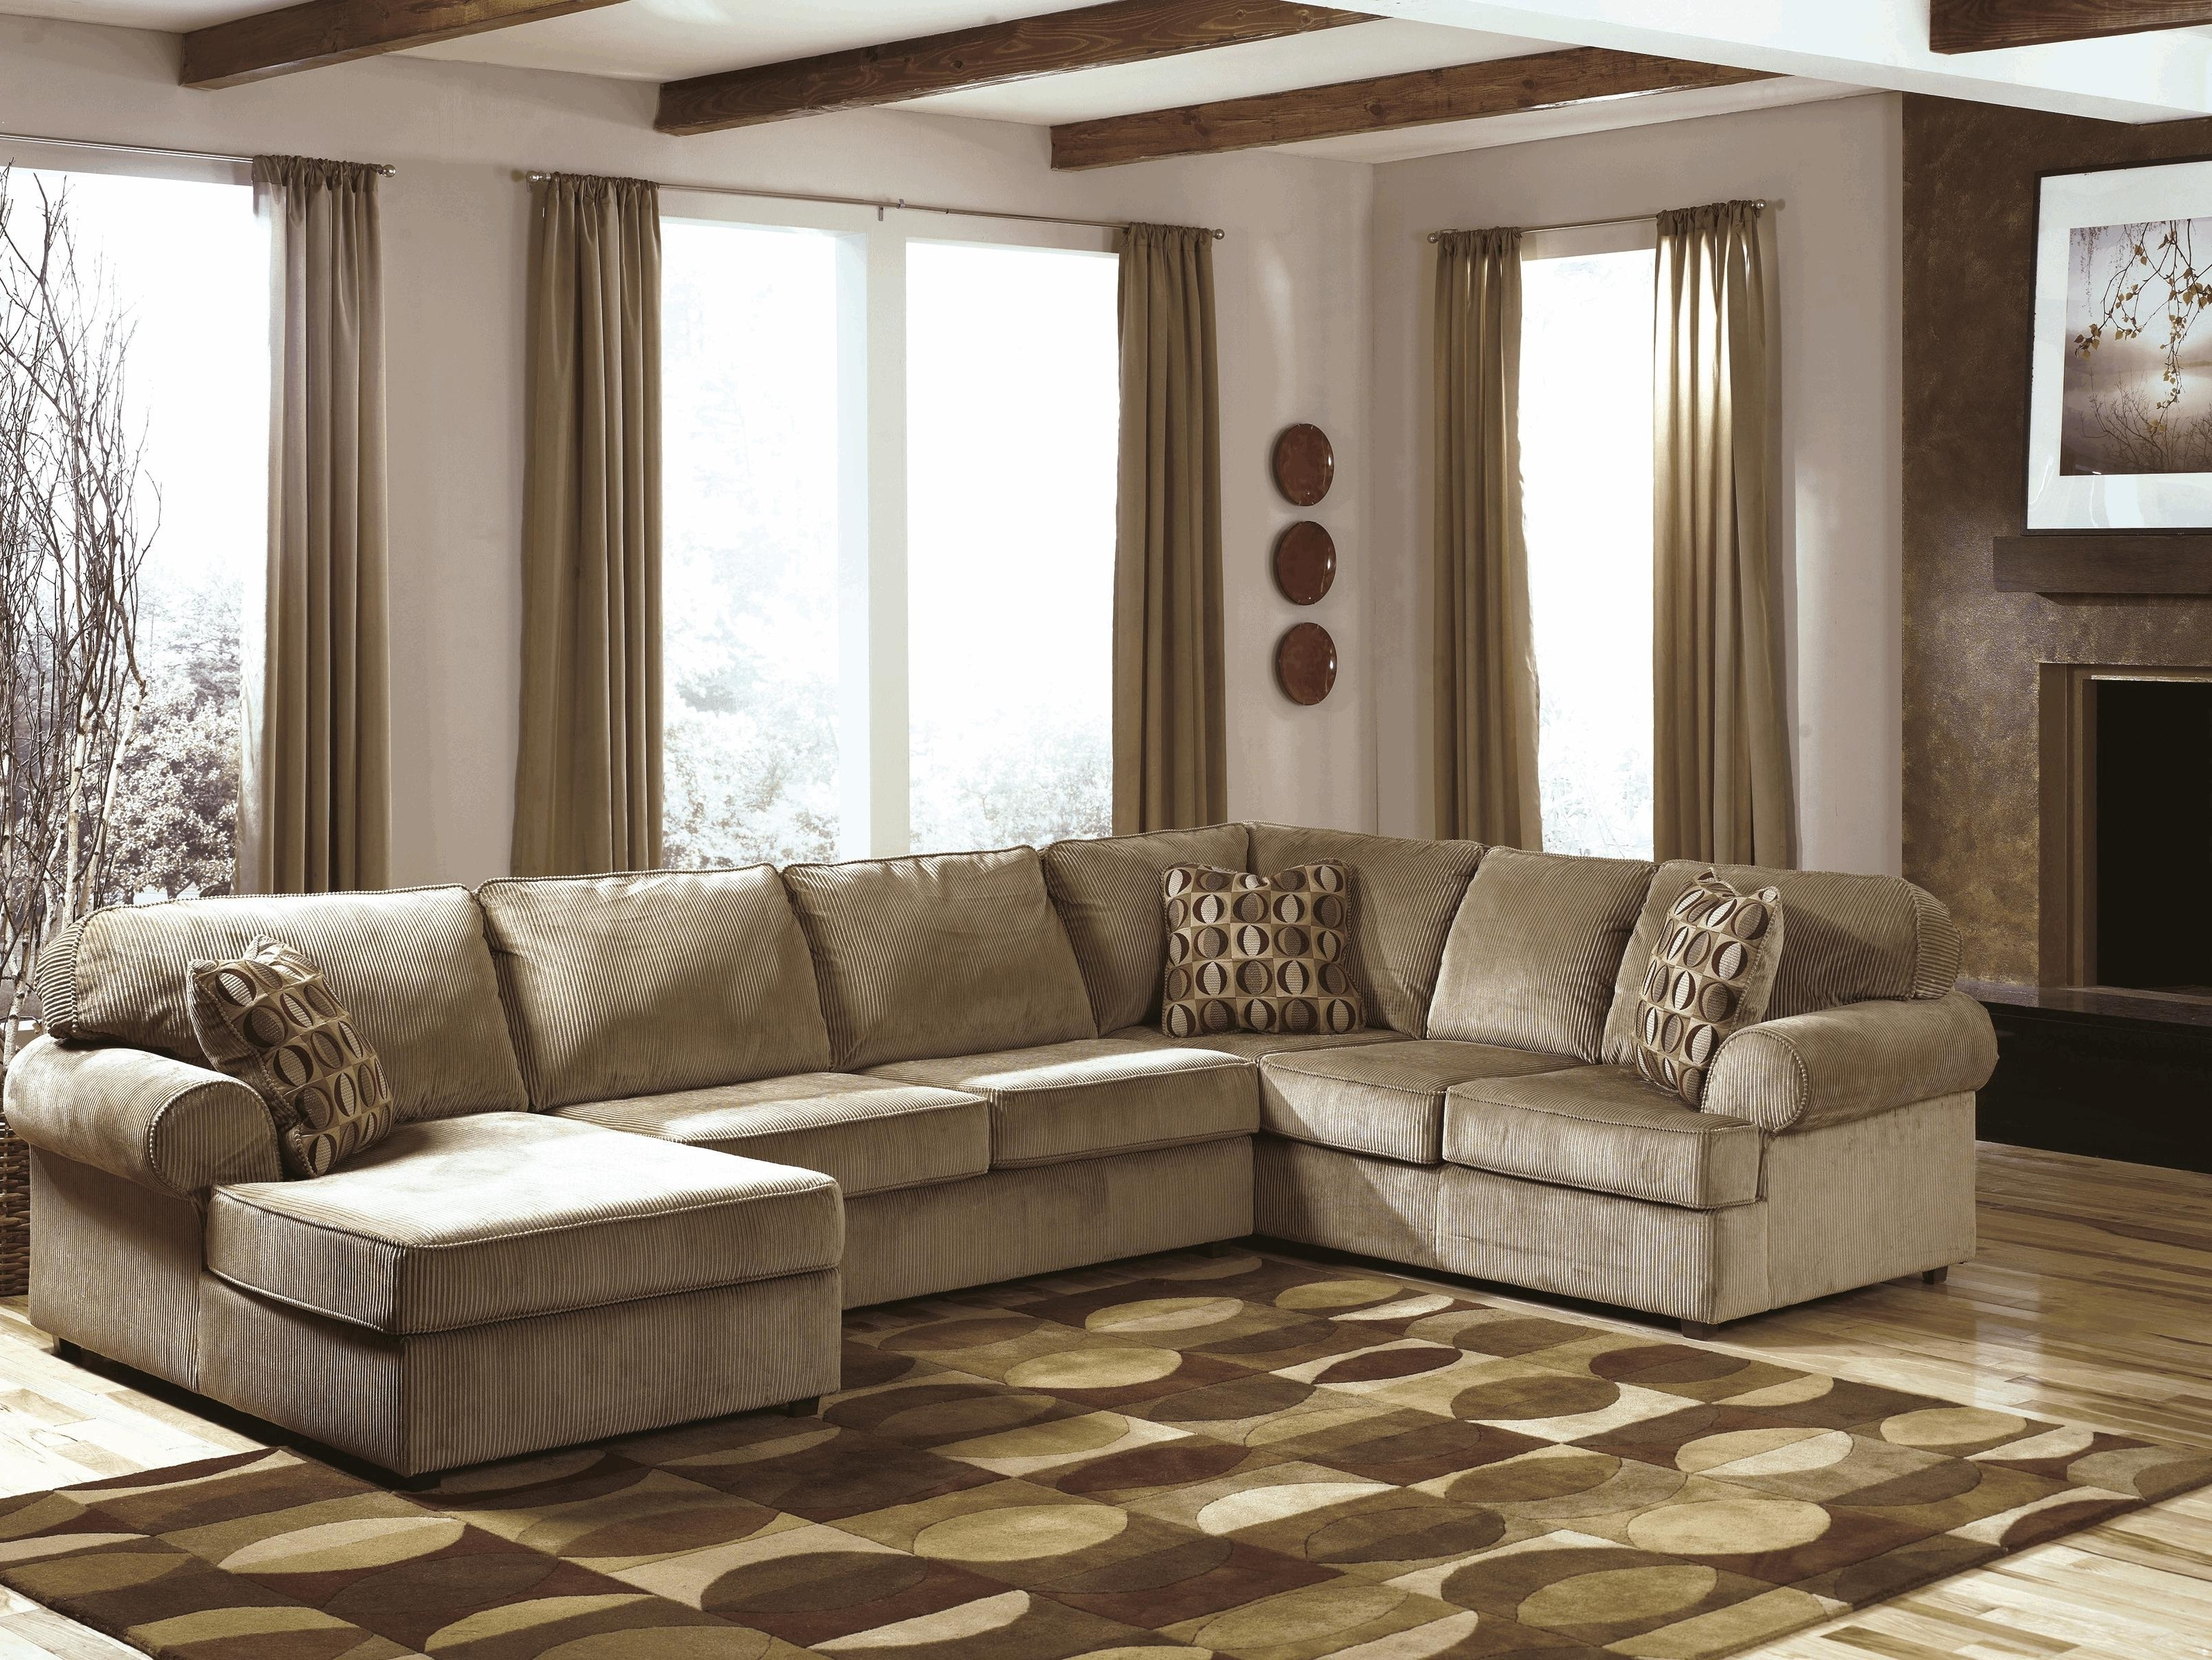 Restoration Hardware Sectional Sofas With Widely Used Decor Retro Leather Sofas And Tufted Sofa Chesterfield Sleeper (View 10 of 15)